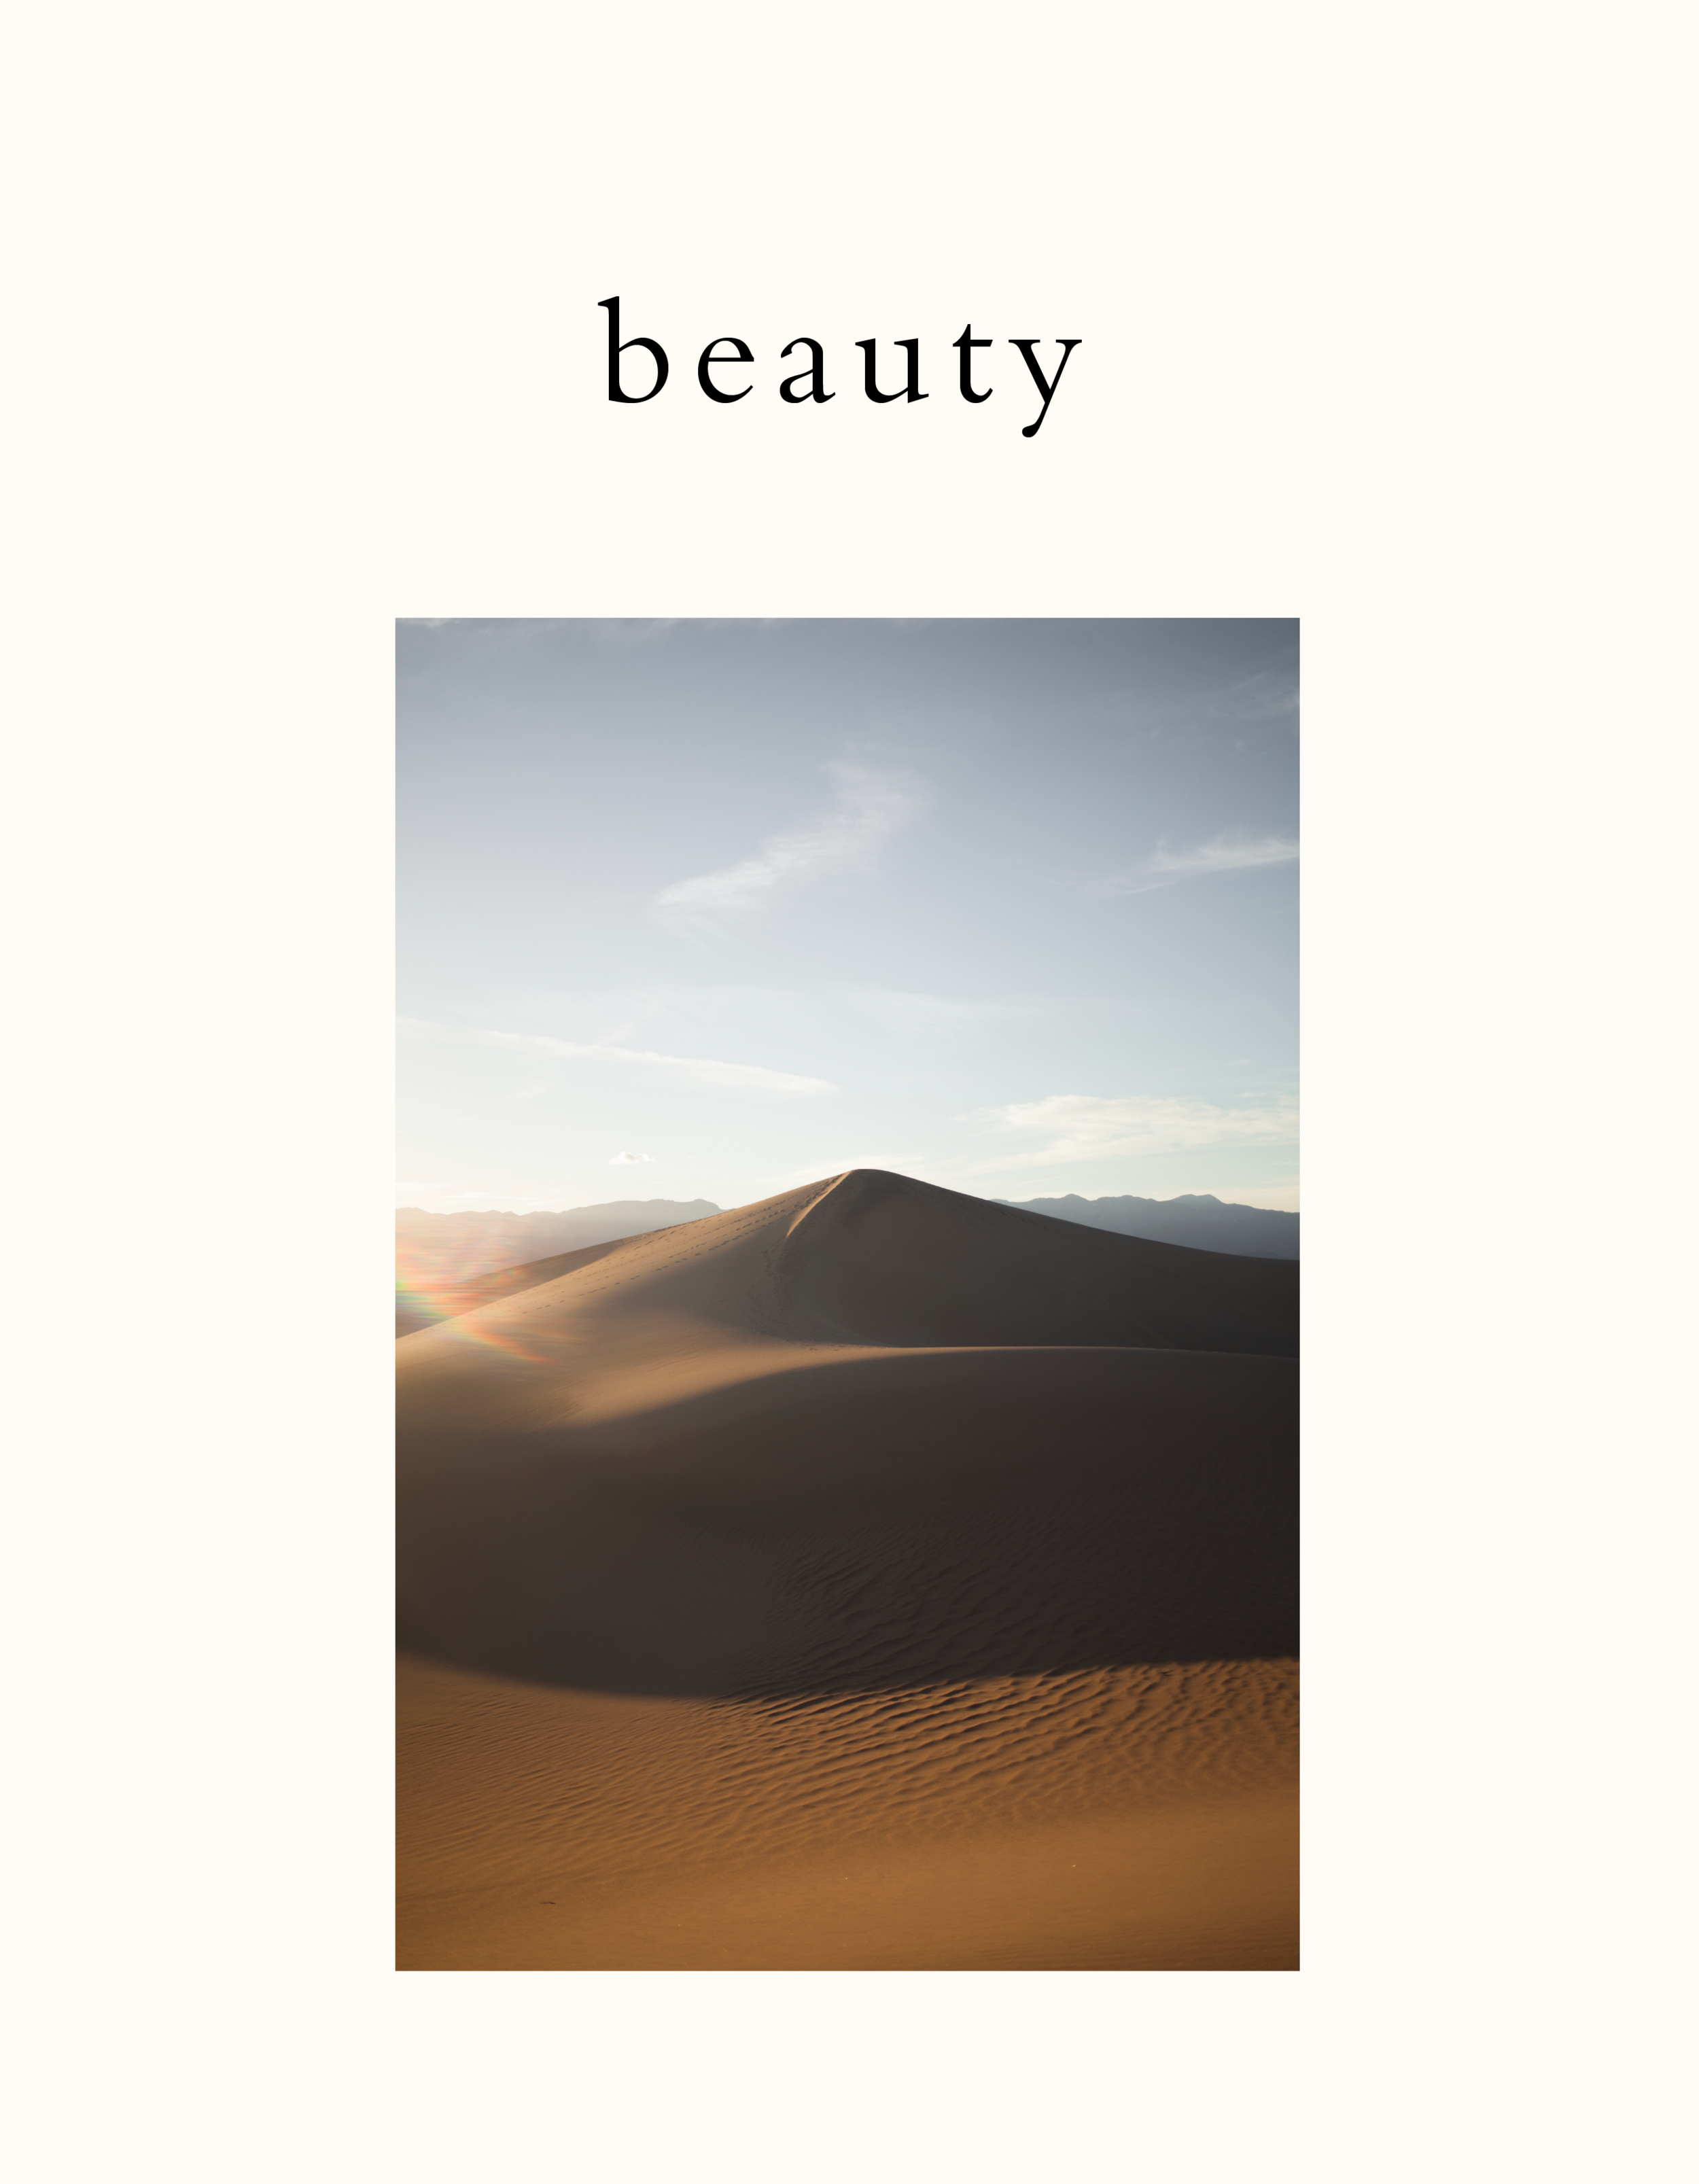 beauty1-01.png